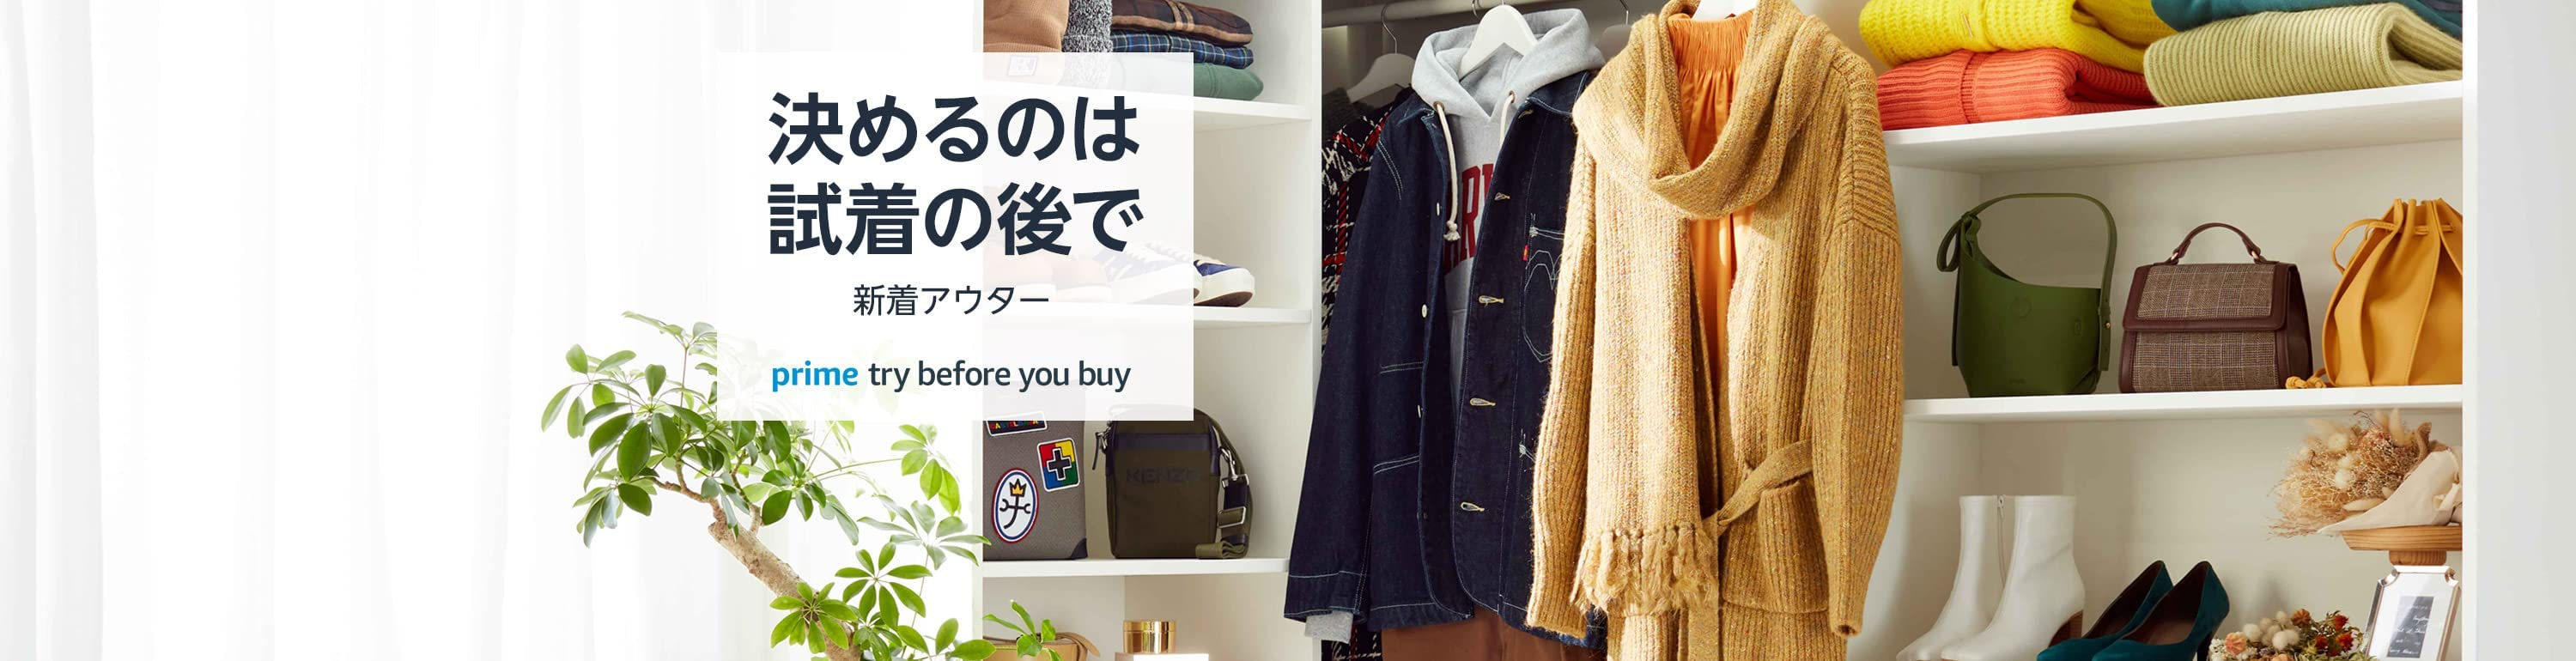 Prime Try Before You Buy 決めるのは試着の後で